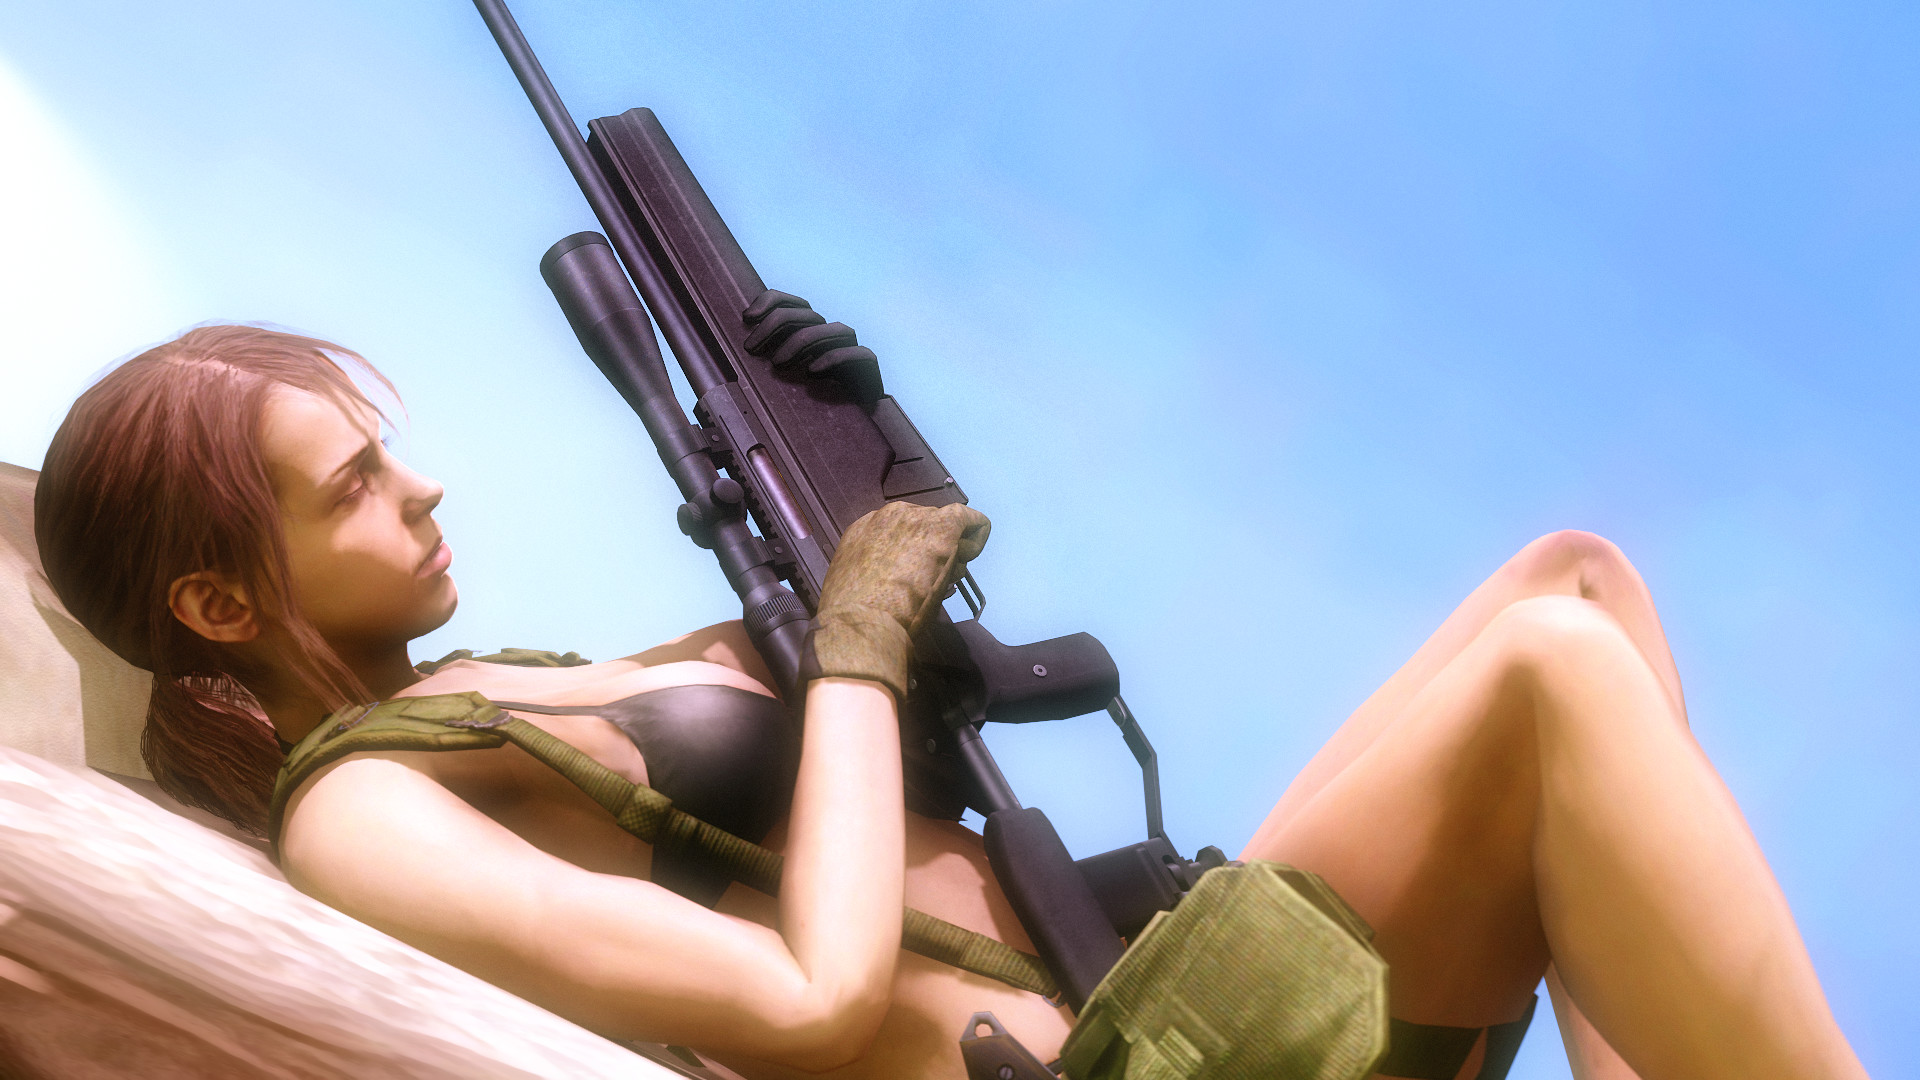 Res: 1920x1080, ... AngryRabbitGmoD Quiet (Metal Gear Solid 5: The Phantom Pain) by  AngryRabbitGmoD